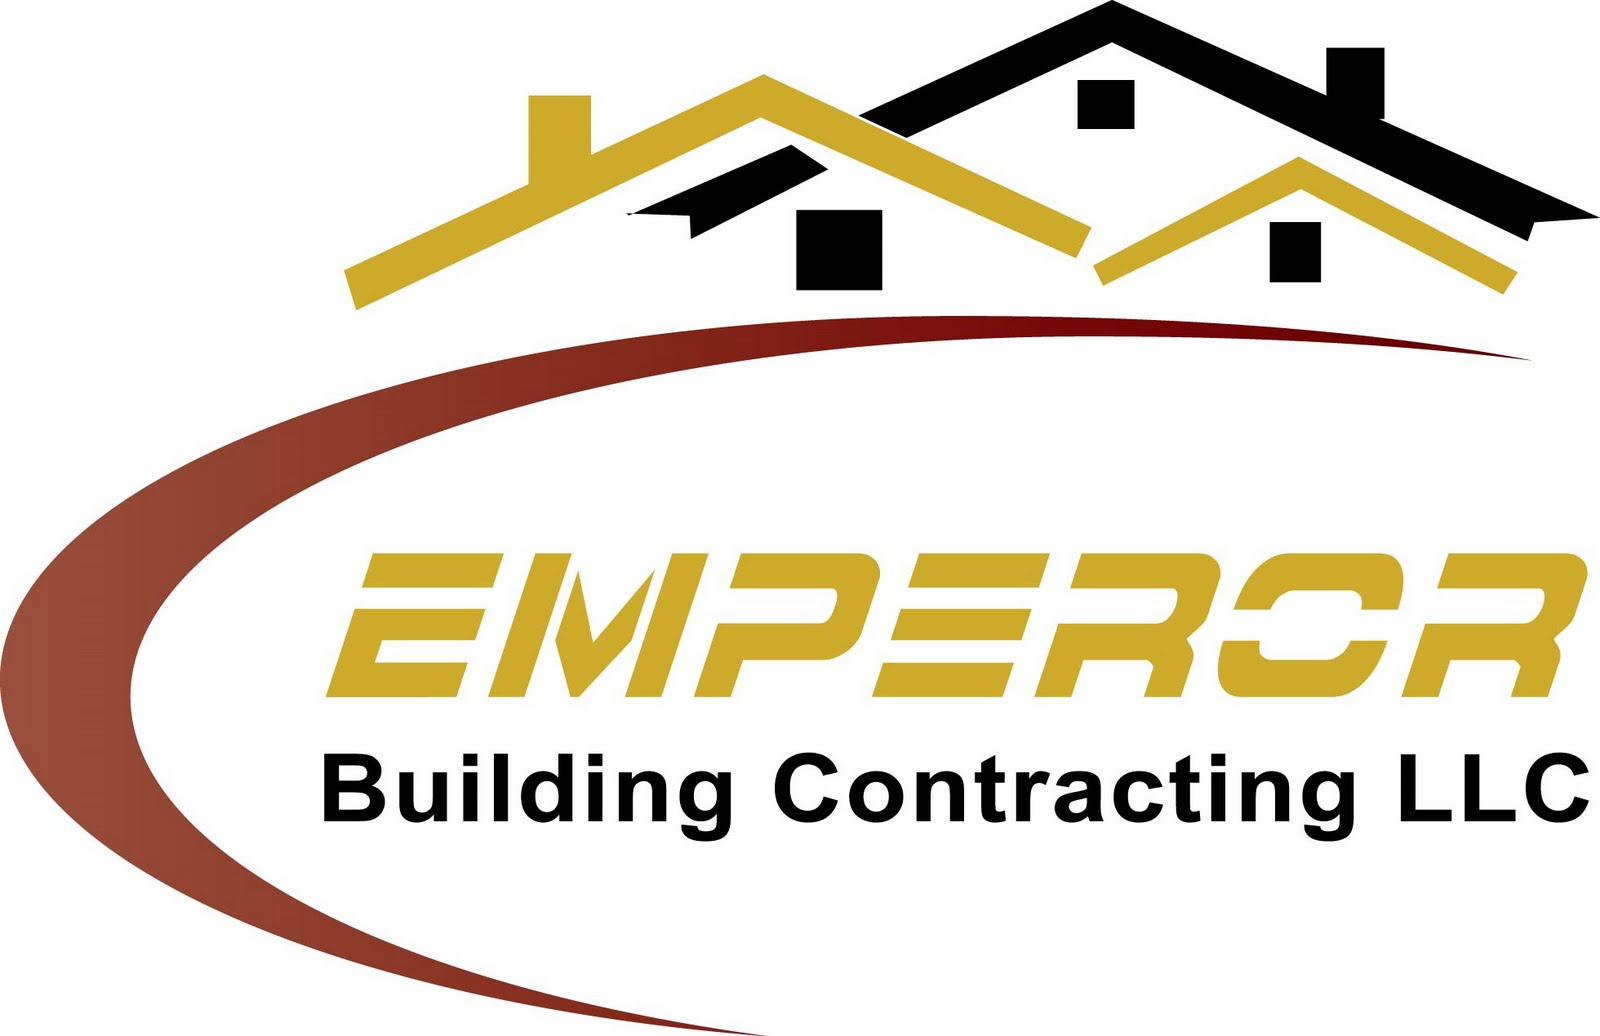 Construction Logo Clipart - Clipart Suggest